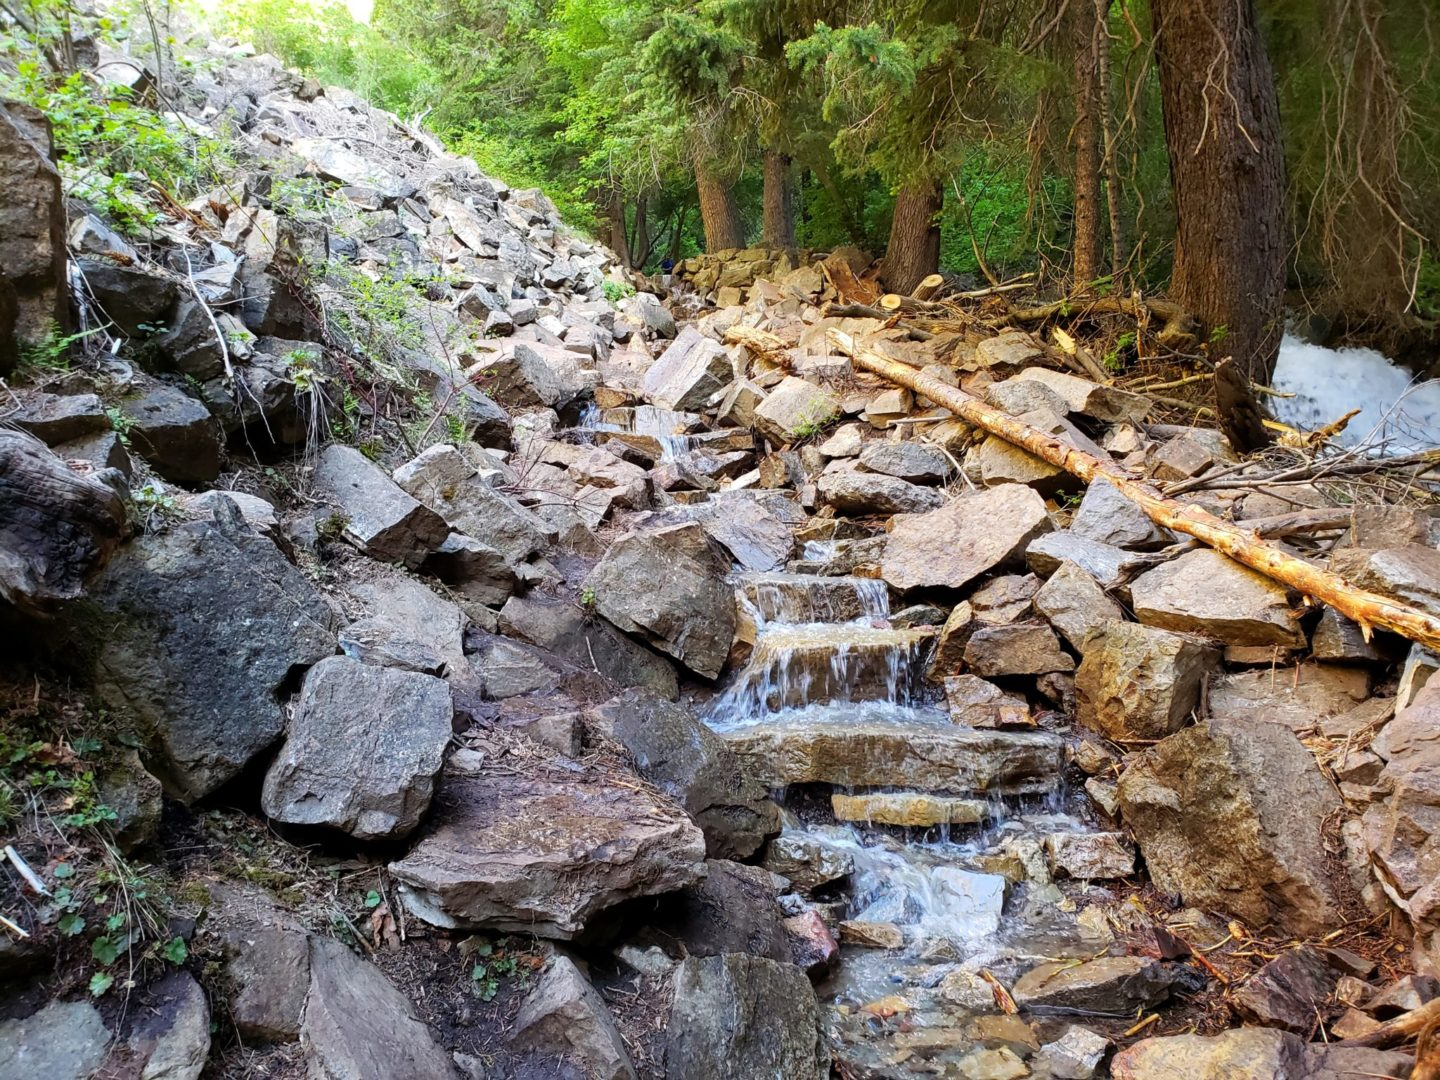 The trail turned into a mini waterfall